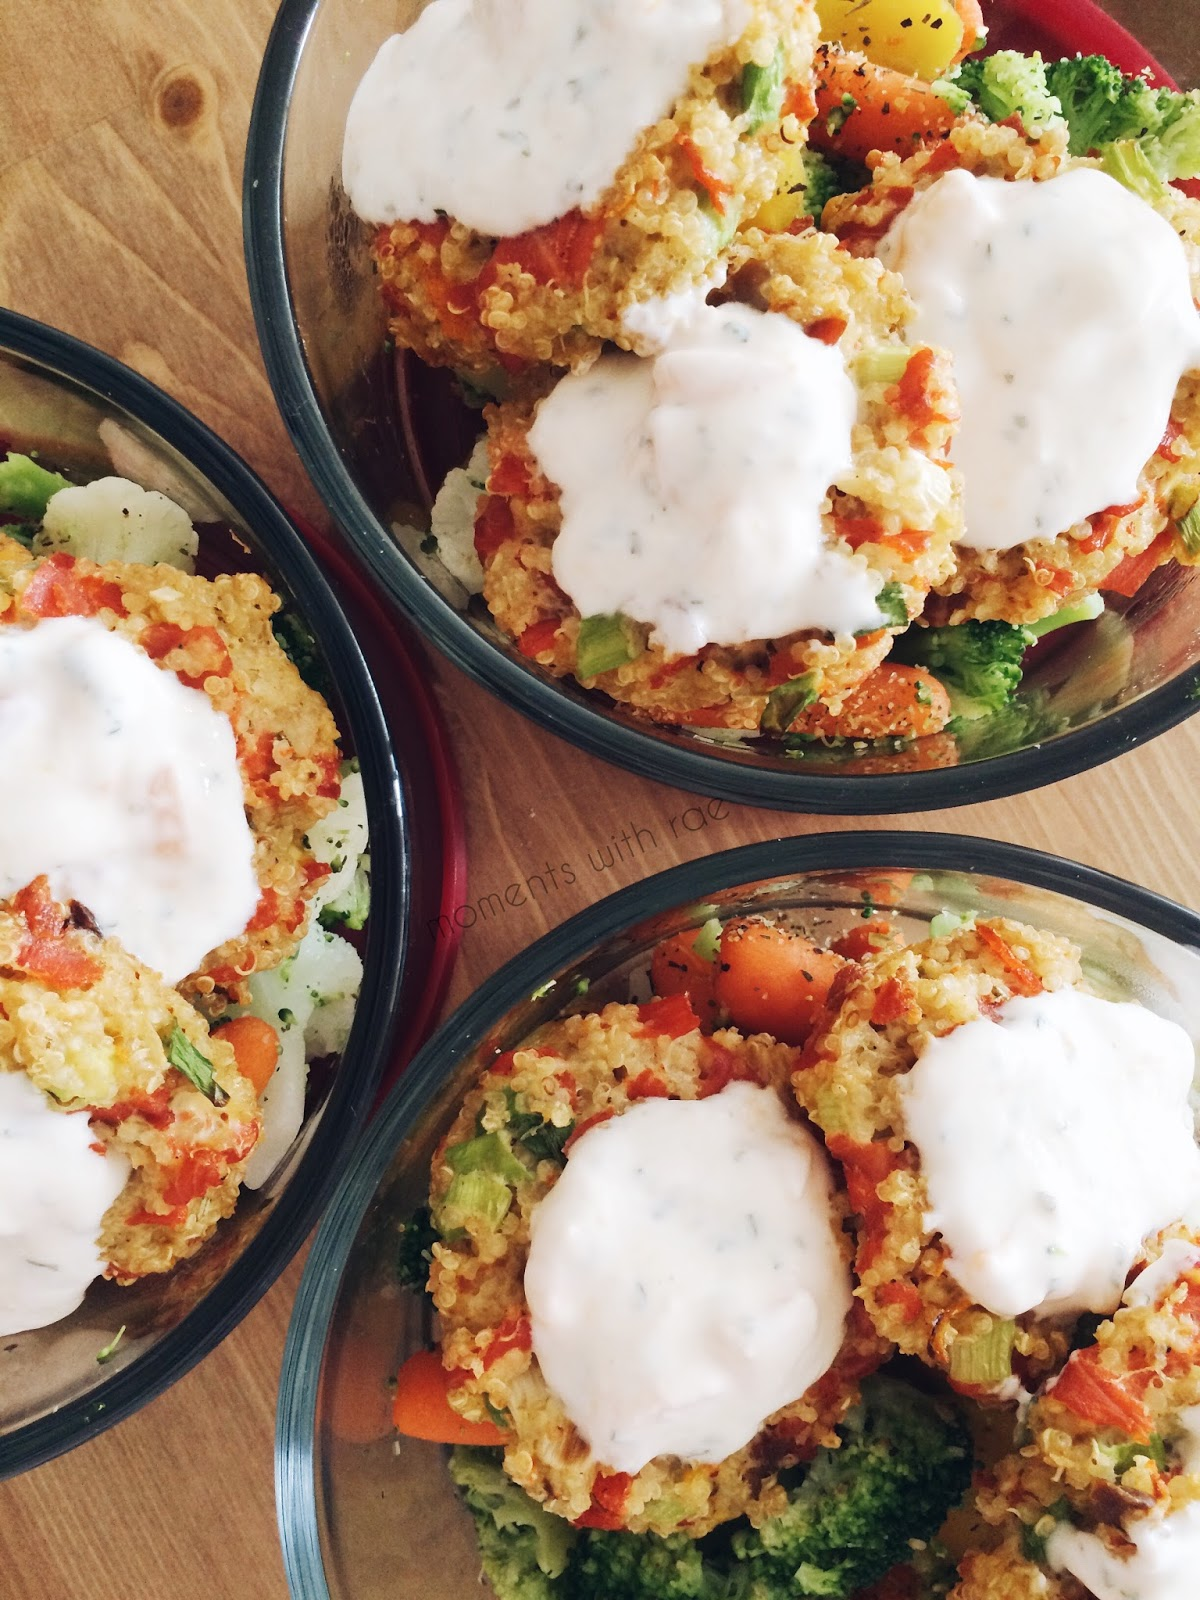 Salmon And Quinoa Patties With Lemon-Yogurt Sauce Recipes — Dishmaps